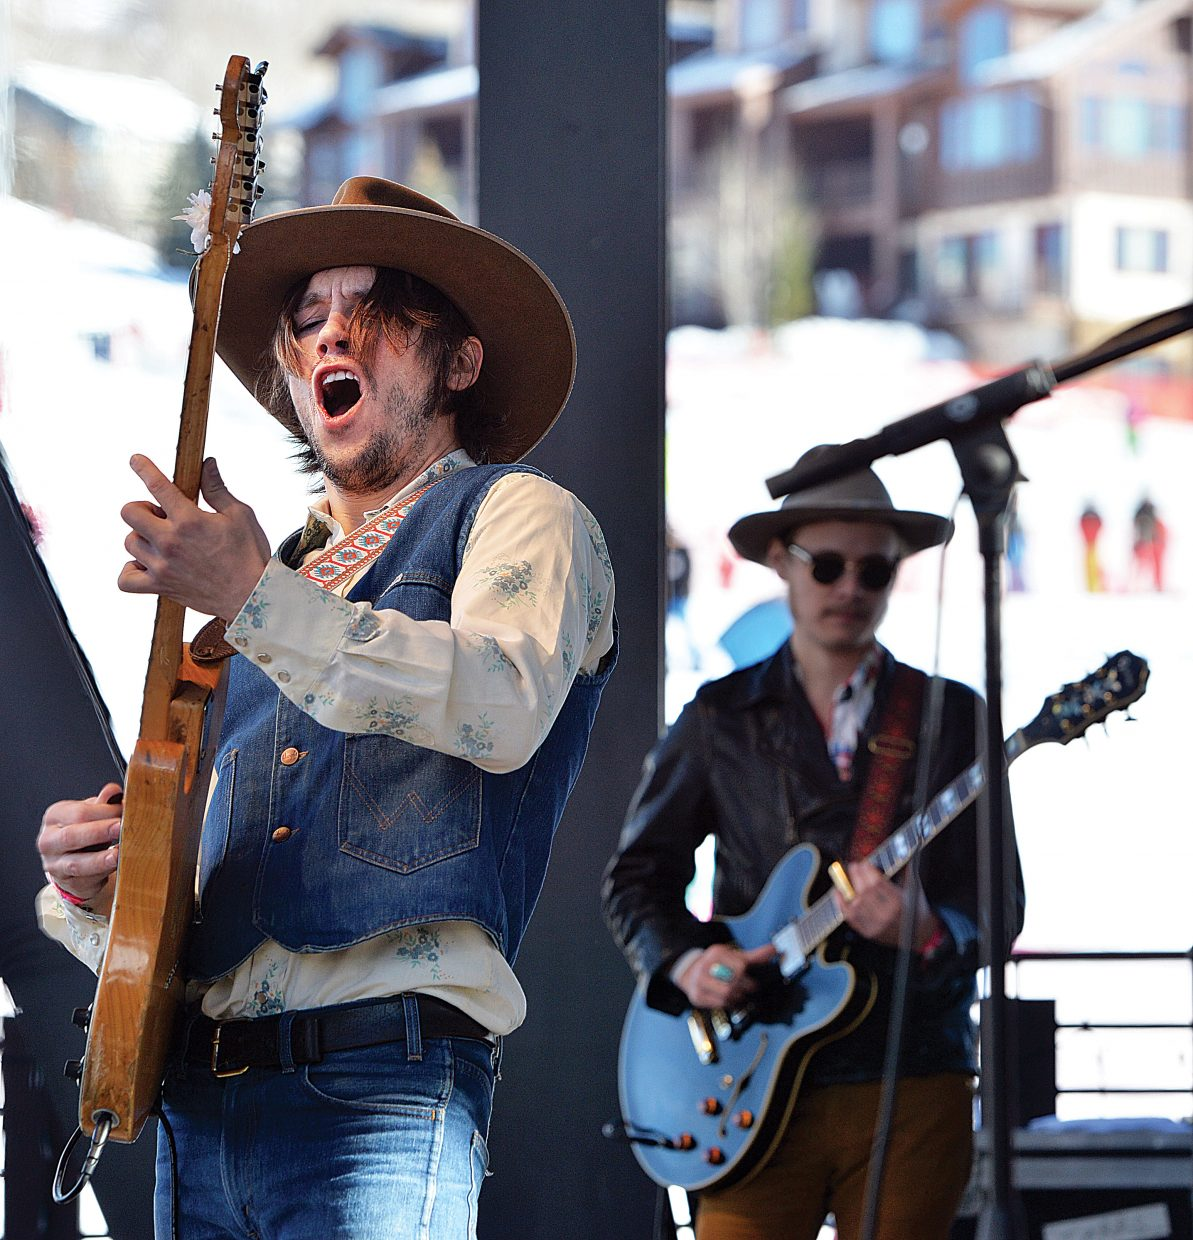 Jonathan Tyler and his band performed live Wednesday afternoon during a free concert in Gondola Square. The group was in town as part of this year's MusicFest.